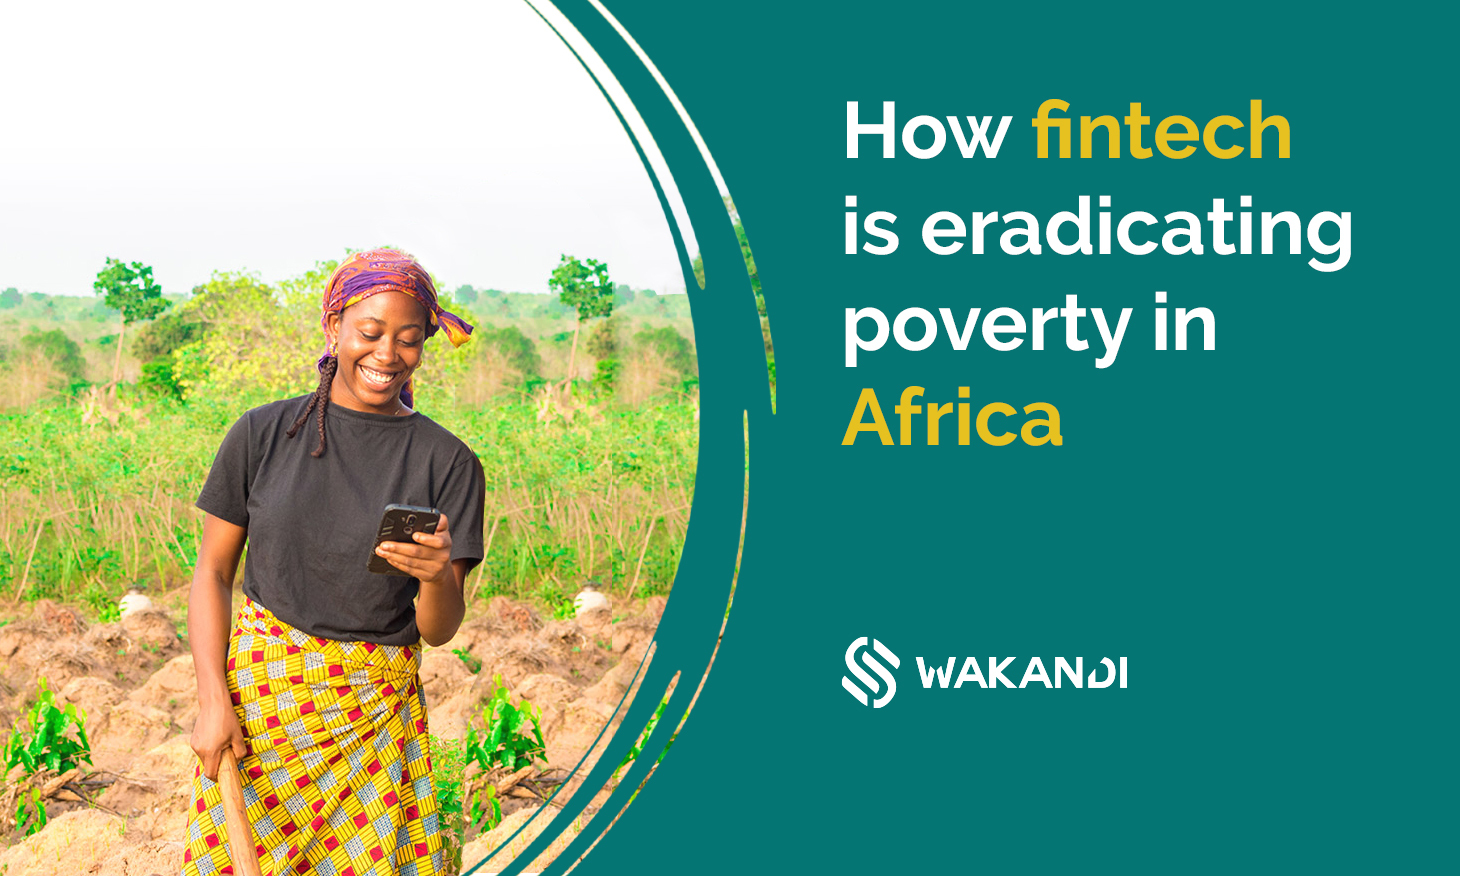 Fintech eradicating poverty in Africa